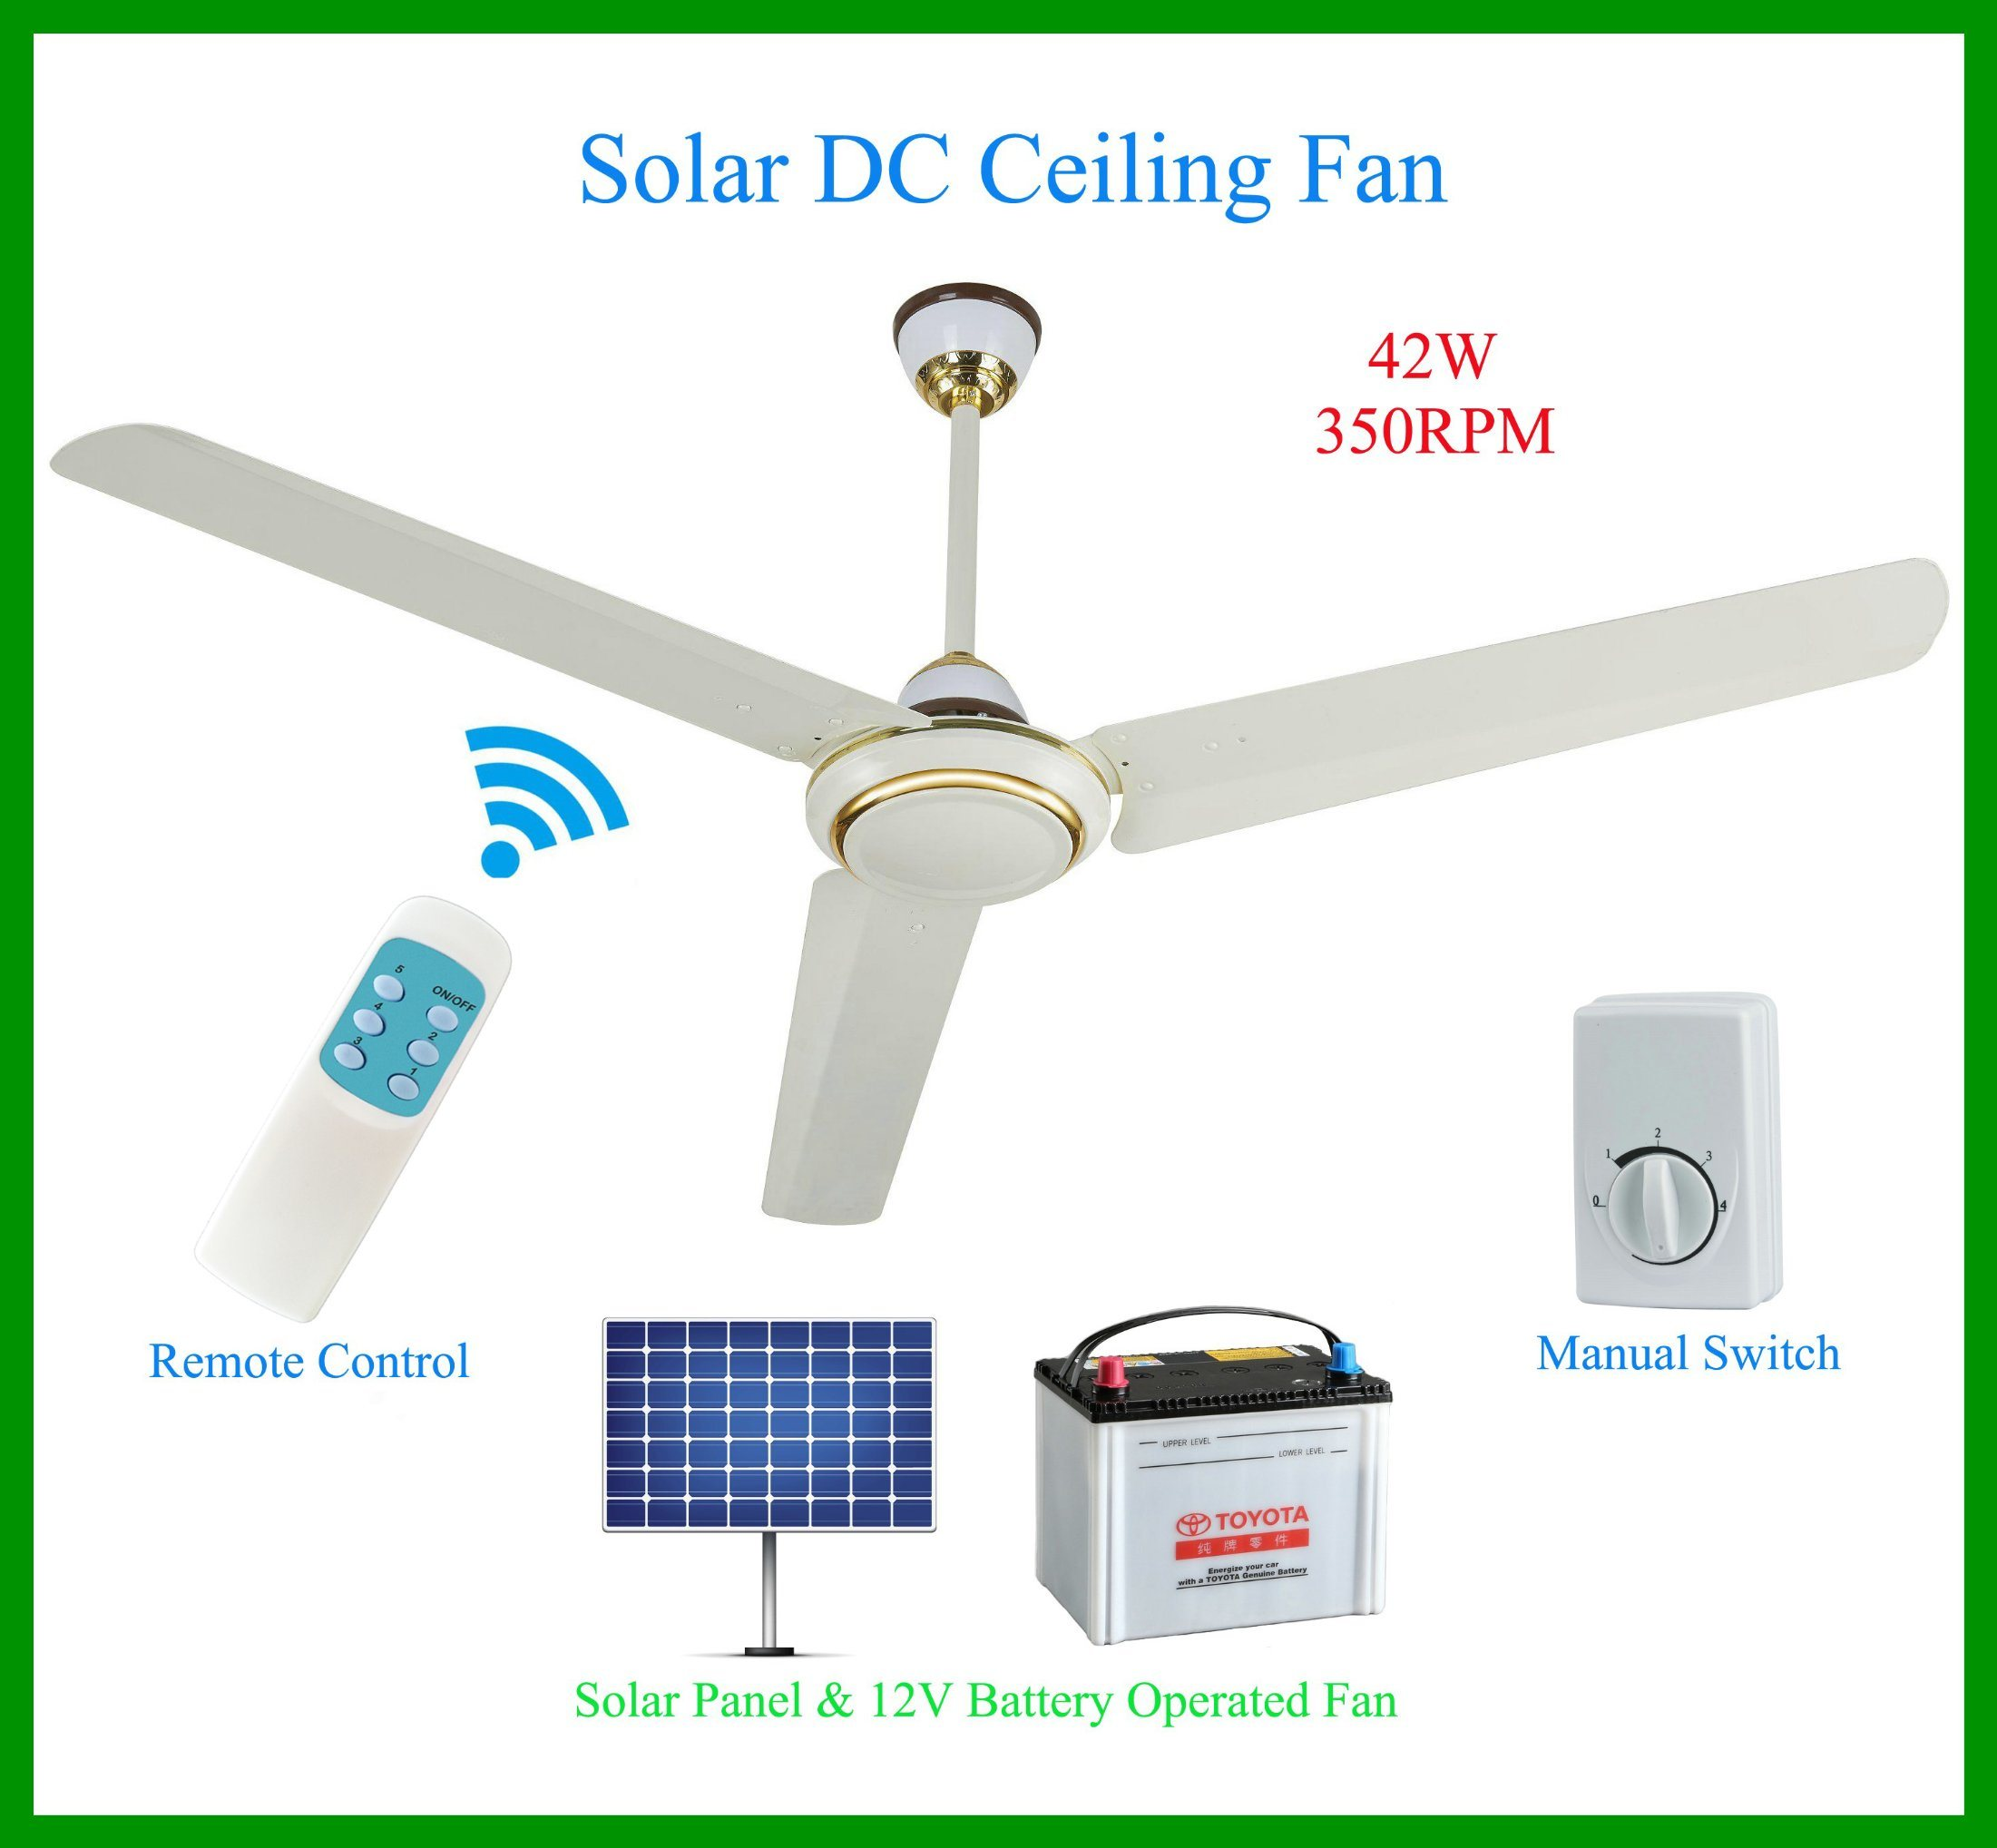 China best solar dc ceiling fan for pakistan market 350rpm china china best solar dc ceiling fan for pakistan market 350rpm china dc ceiling fan ceiling fan aloadofball Image collections